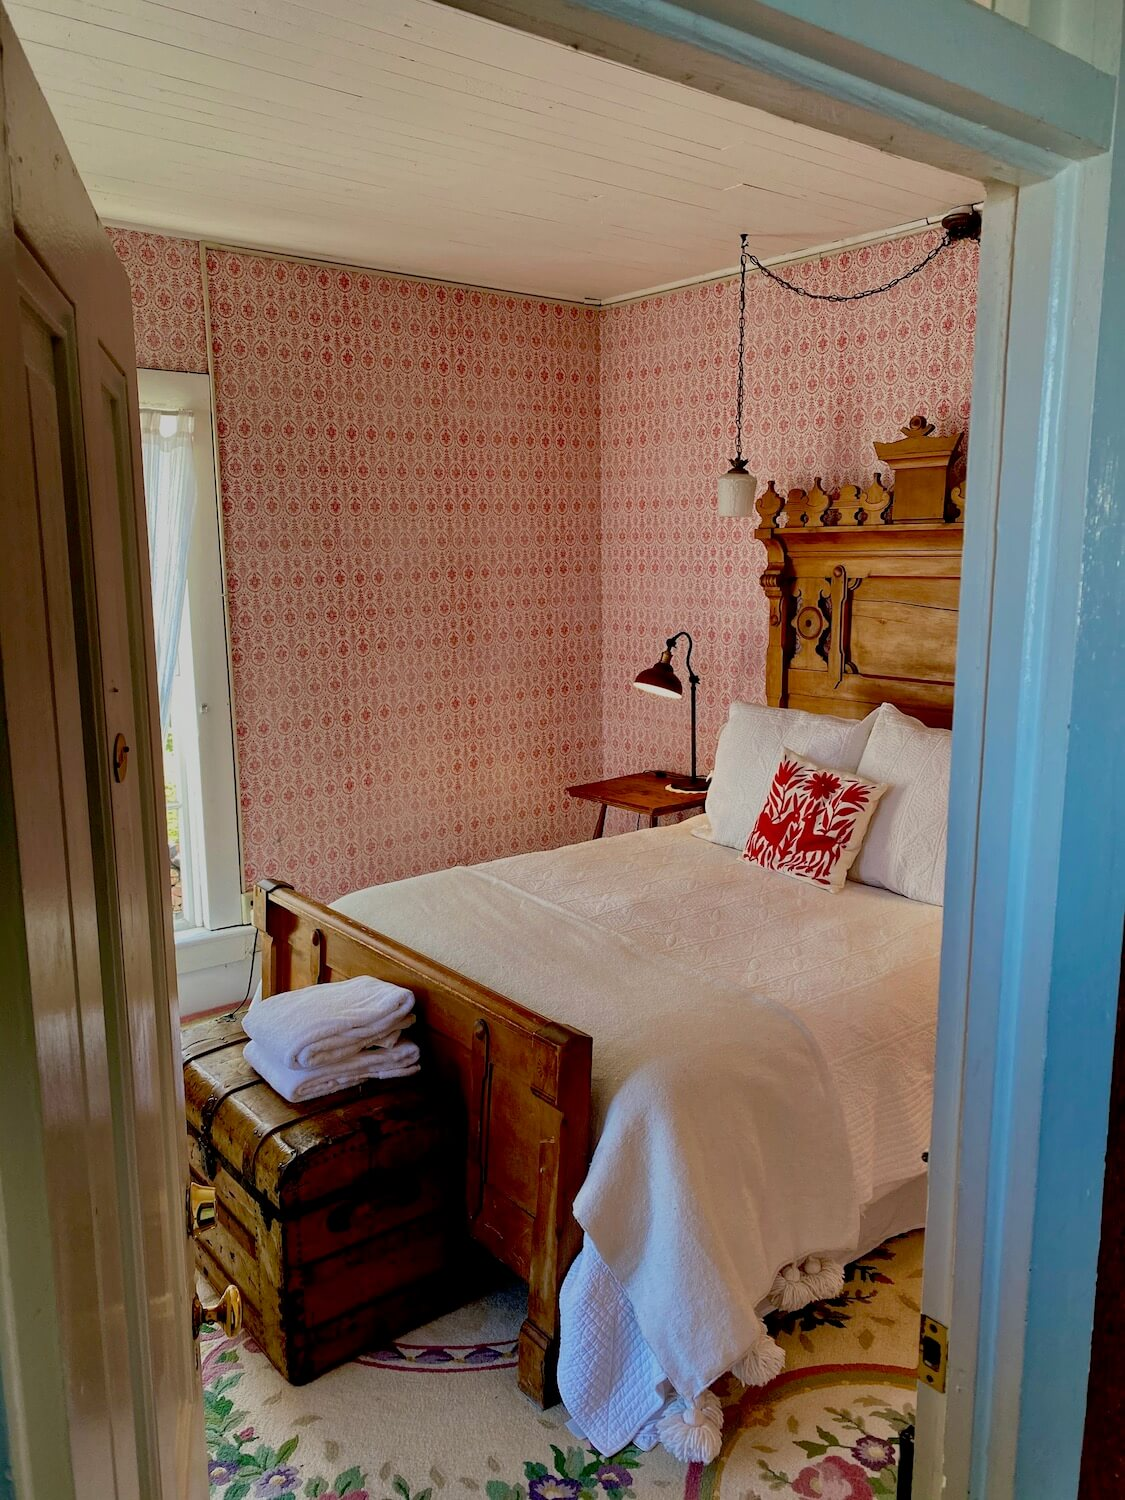 Room #1 at the Tokeland Hotel, on the Washignton Coast. This view is looking into the room from the hallway. The room has wallpaper with bright red geometric circles and a white wood slat roof. The bedspread is white and the ornate headboard made from a walnut looking wood.